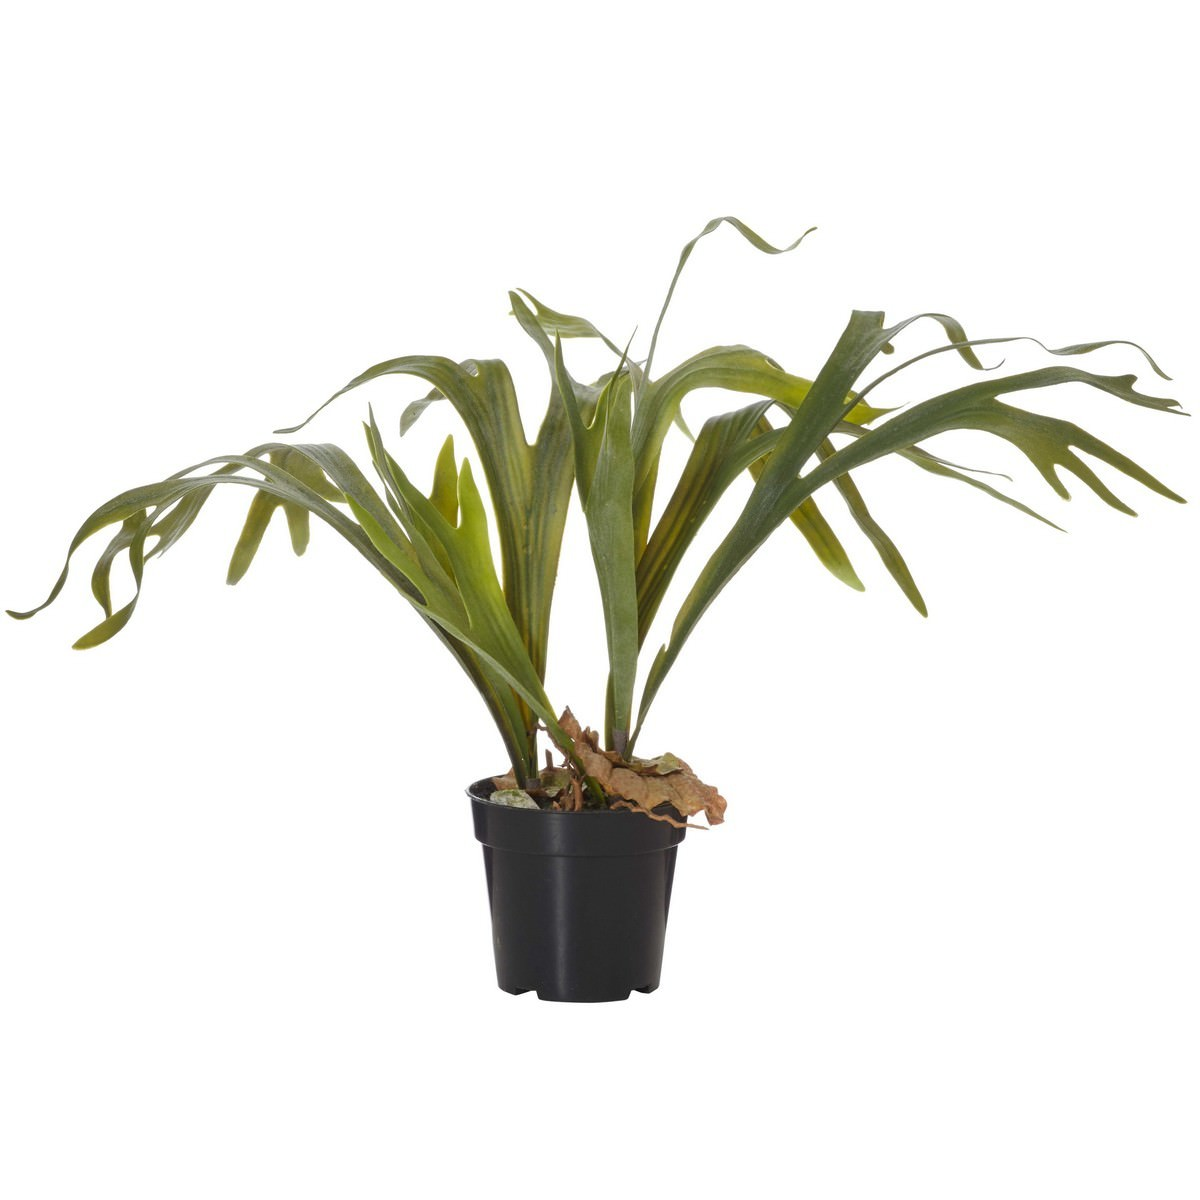 Potted Artificial Staghorn Fern, 55cm